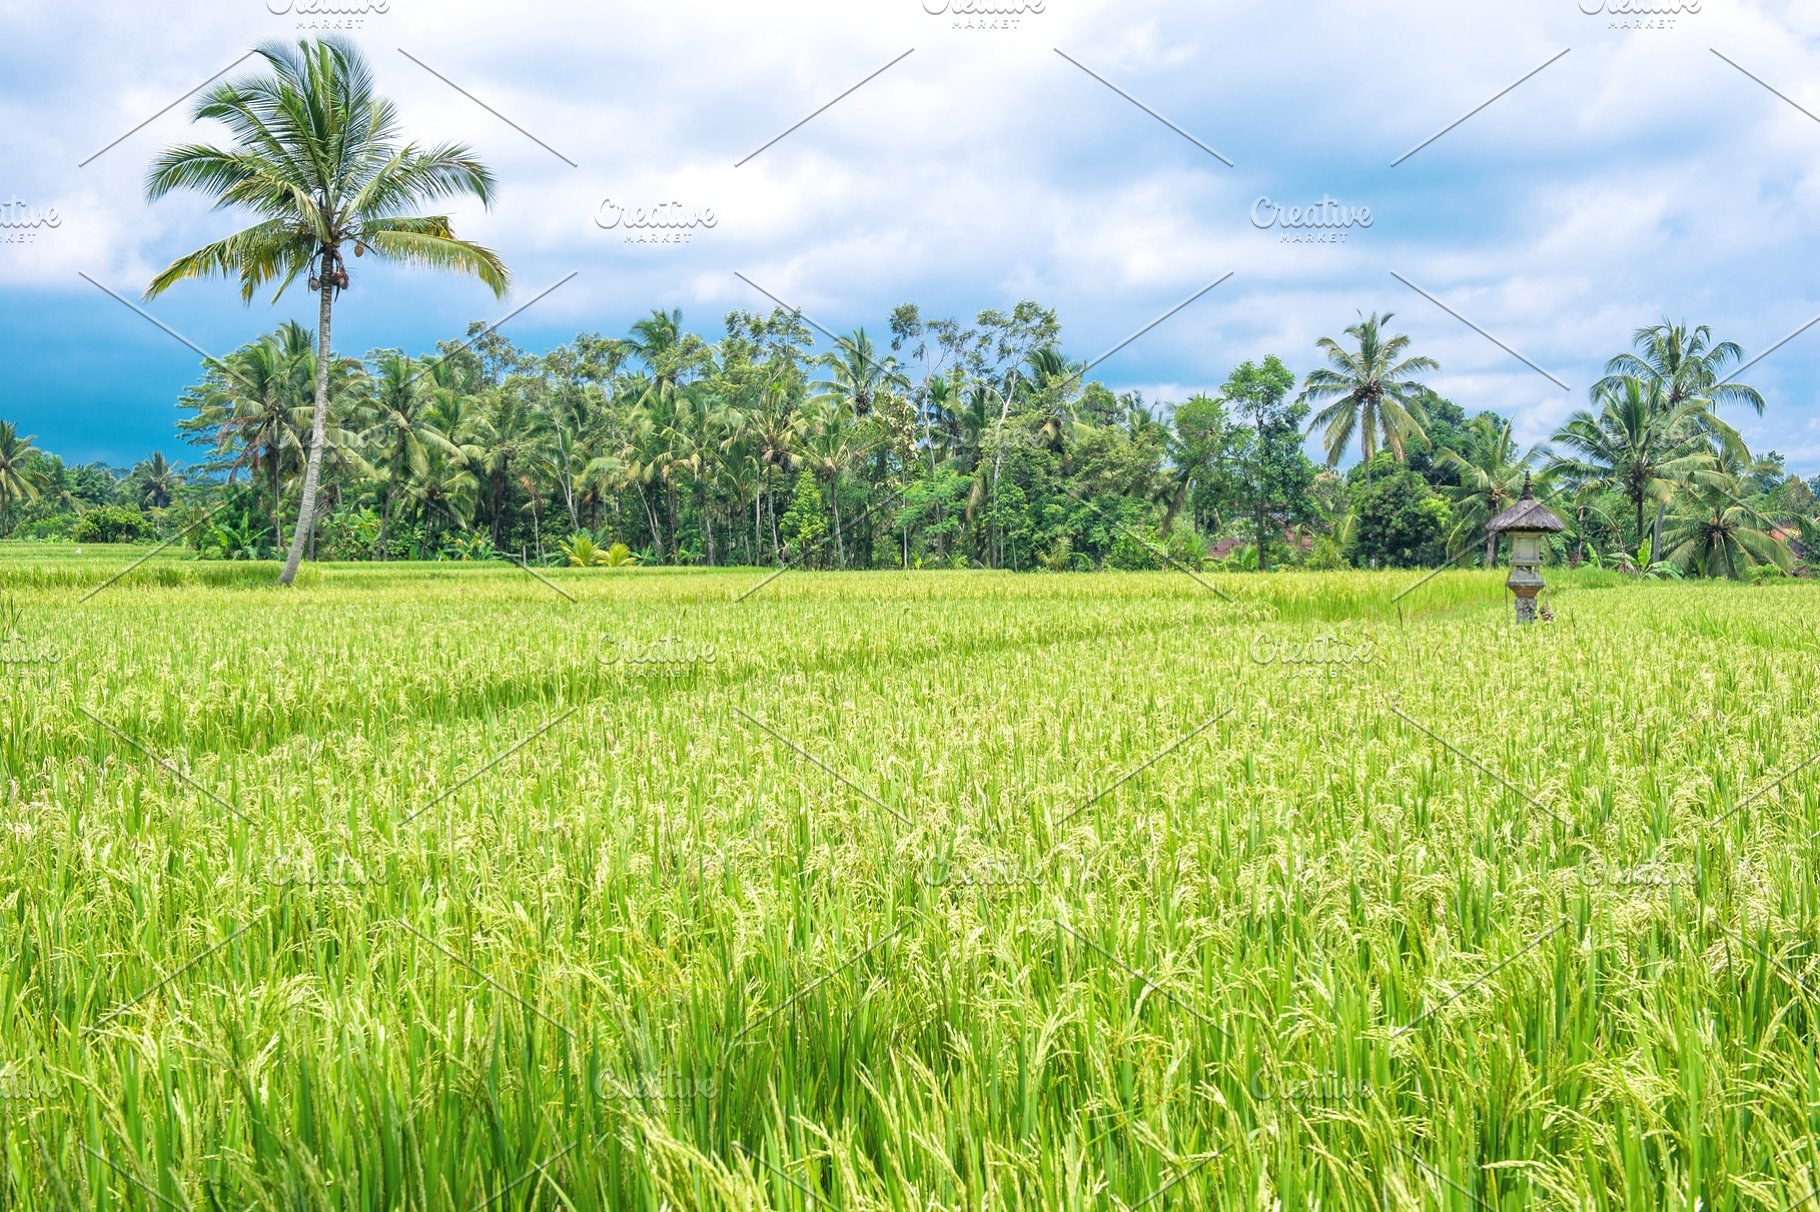 Tropical Landscape Green Rice Field High Quality Nature Stock